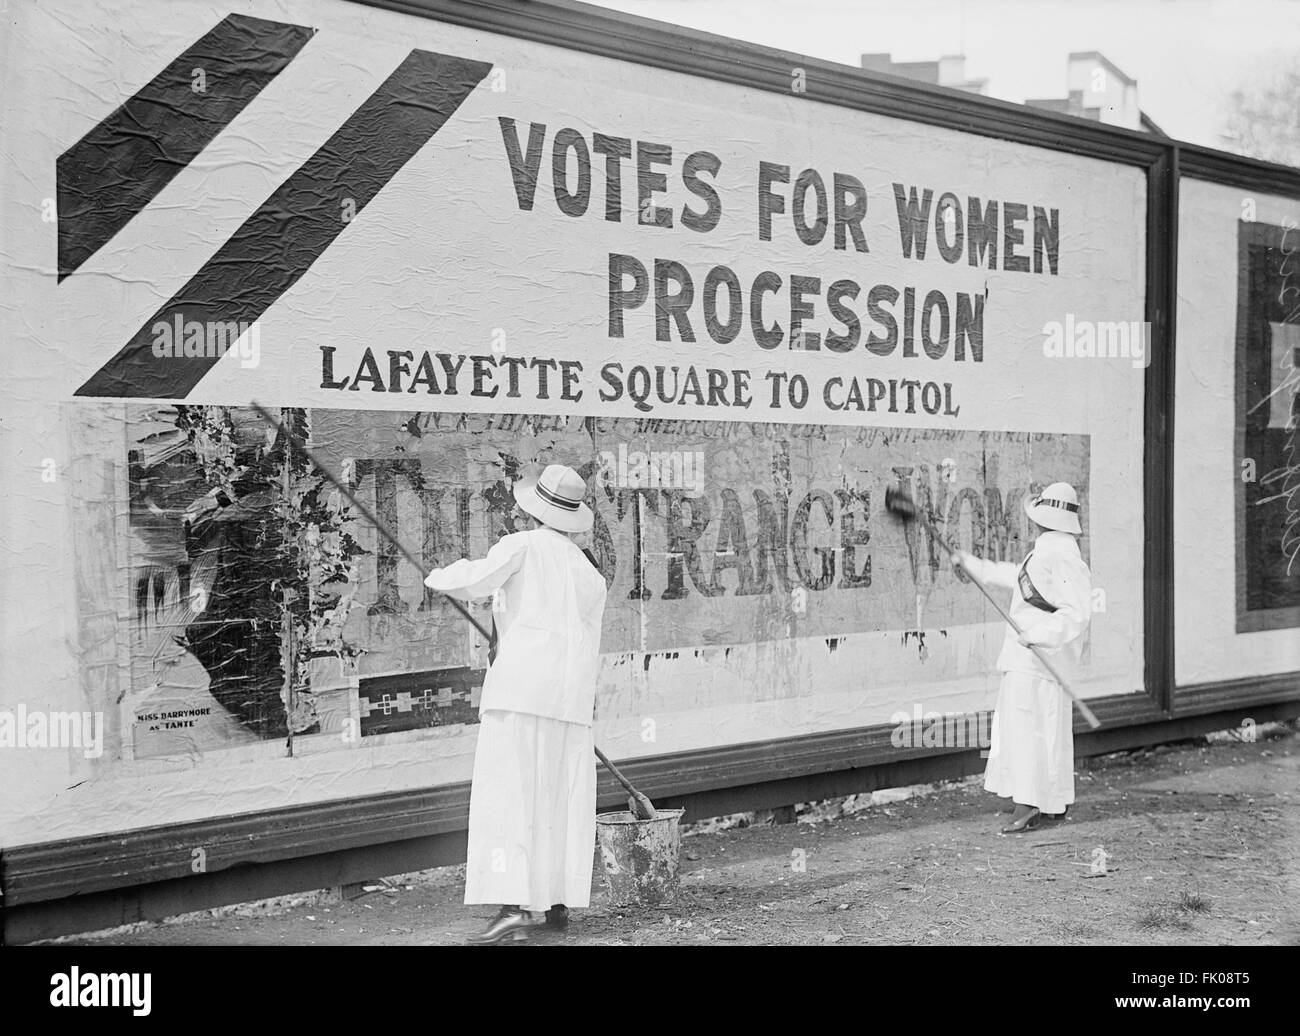 Two Women Putting Up Poster for Women's Suffrage Parade, Washington DC, USA, circa 1914 Stock Photo